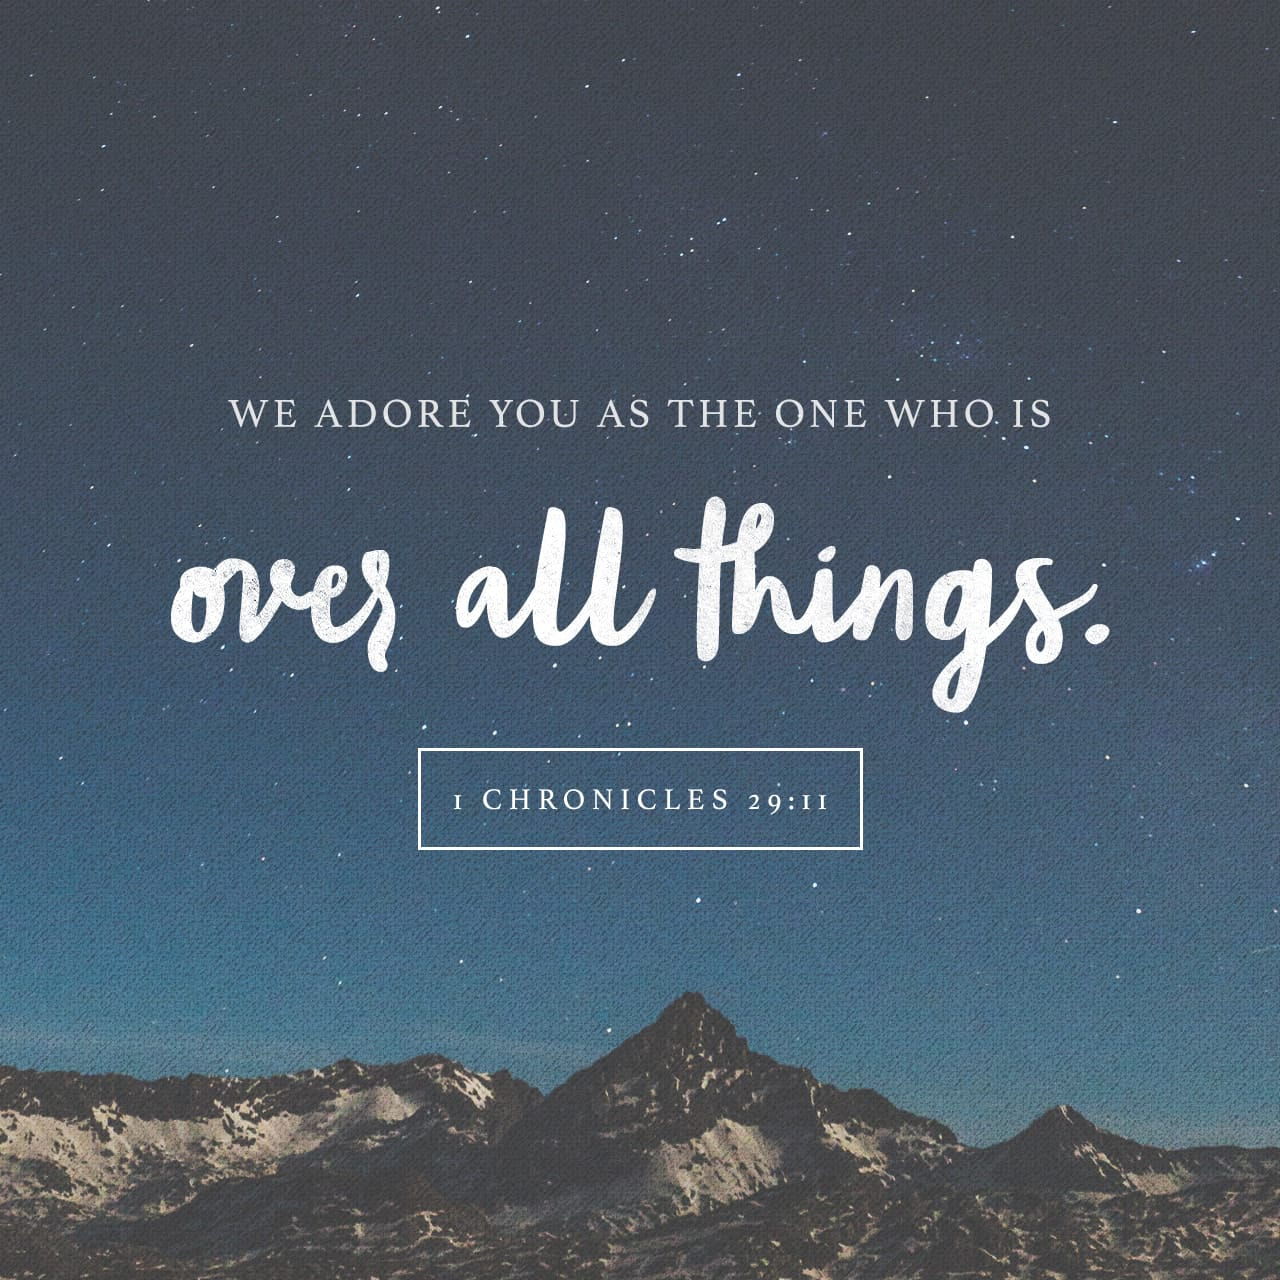 1 Chronicles 29:11 Thine, O LORD, is the greatness, and the power, and the glory, and the victory, and the majesty: for all that is in the heaven and in the earth is thine; thine is the kingdom, O LORD, and thou art exa | King James Version (KJV)